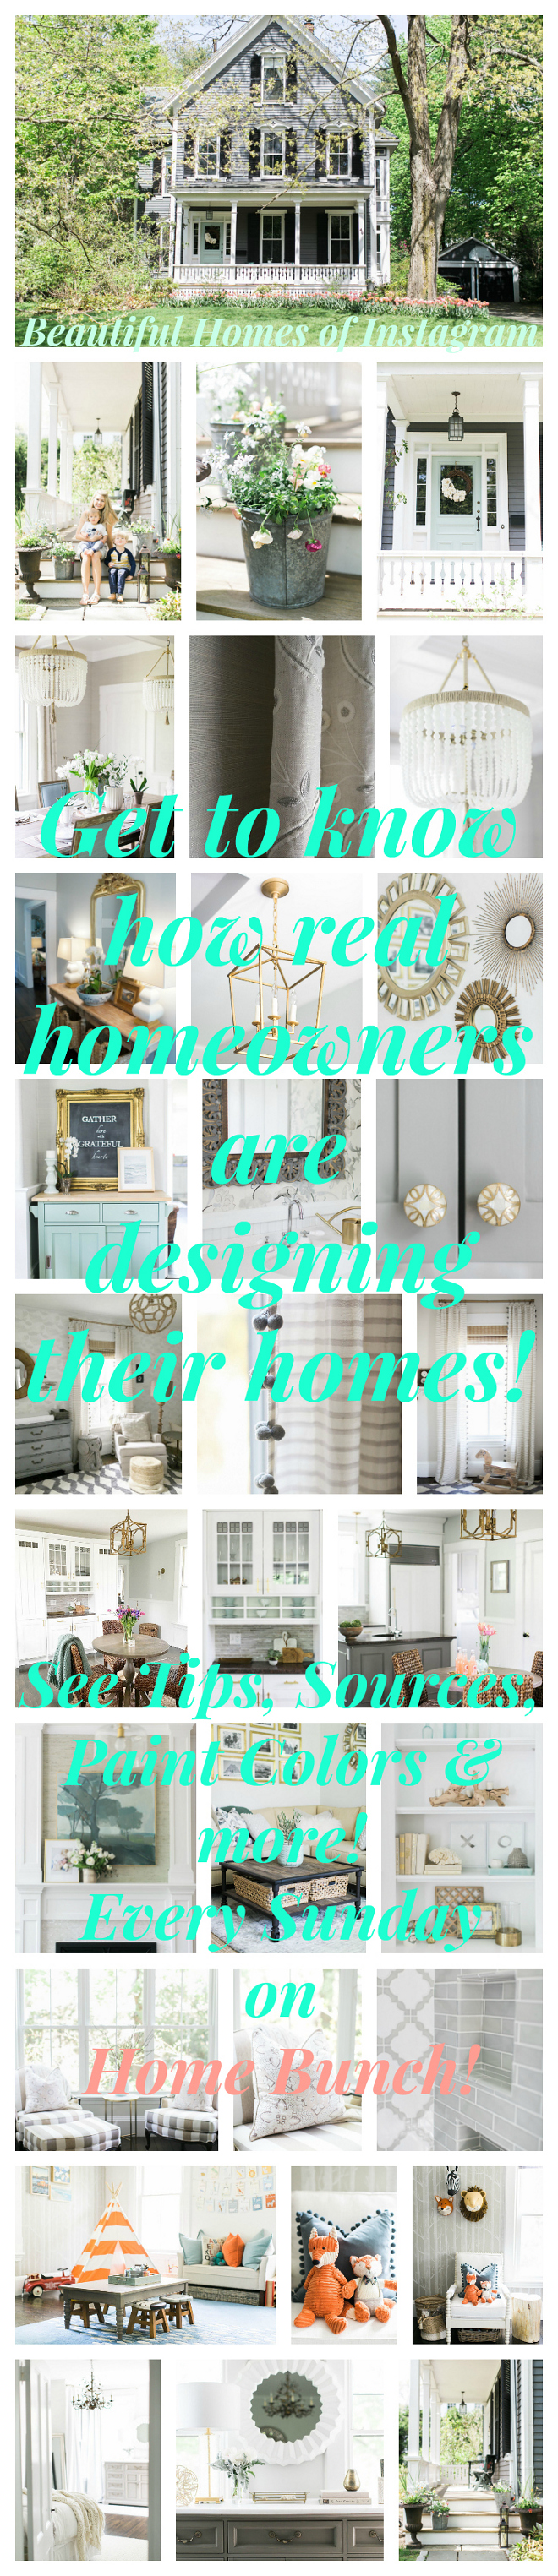 Beautiful Homes of Instagram. Get to know how real homeowners are designing their homes! Every Sunday on HomeBunch